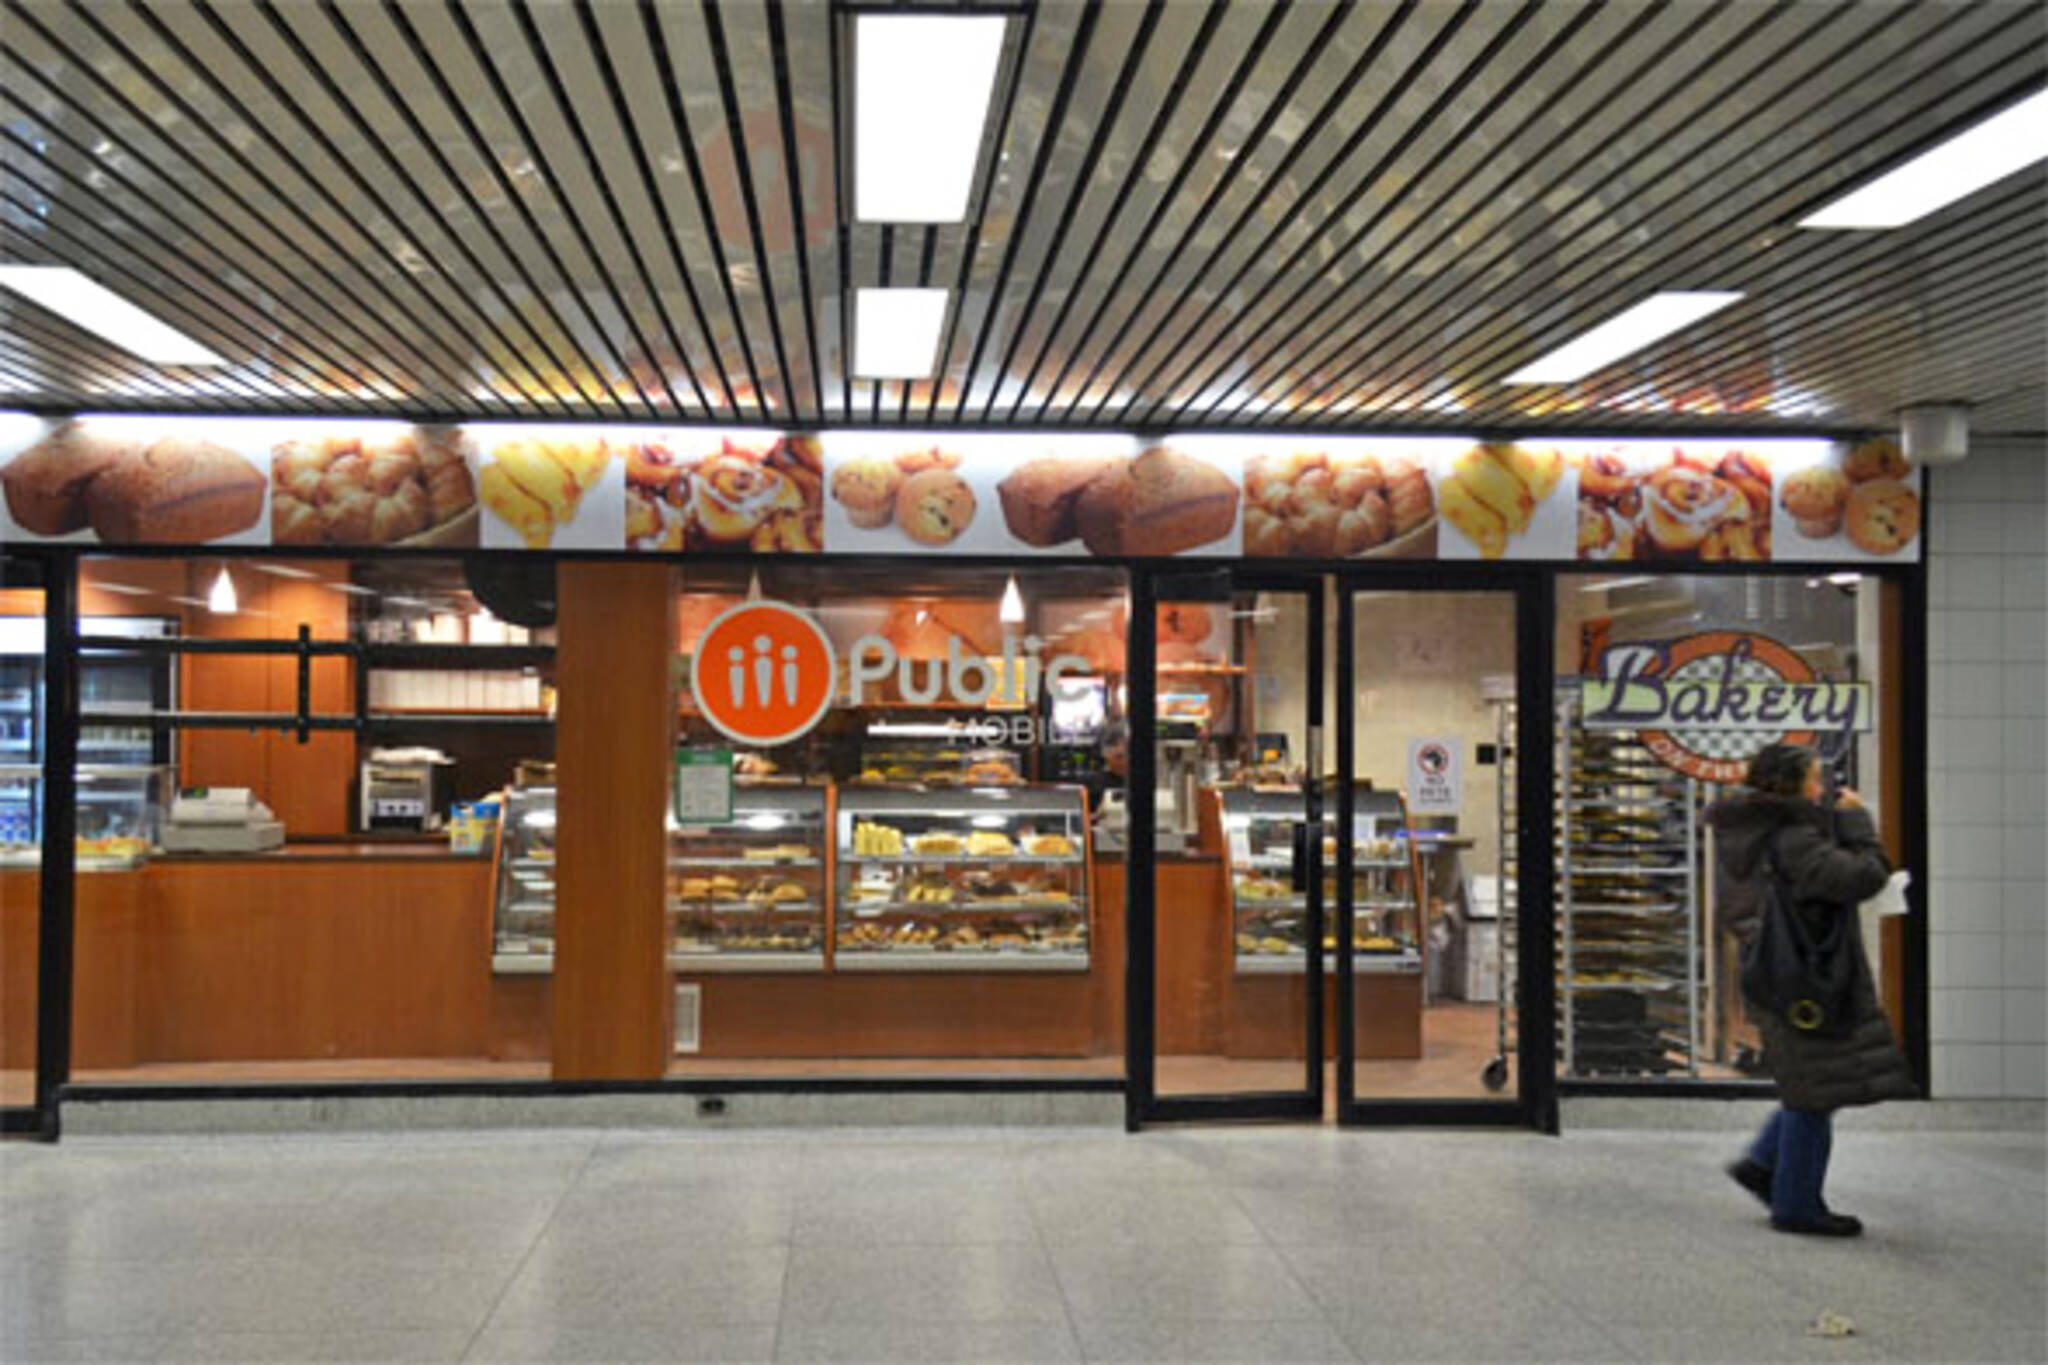 Ttc Stations With The Best Food